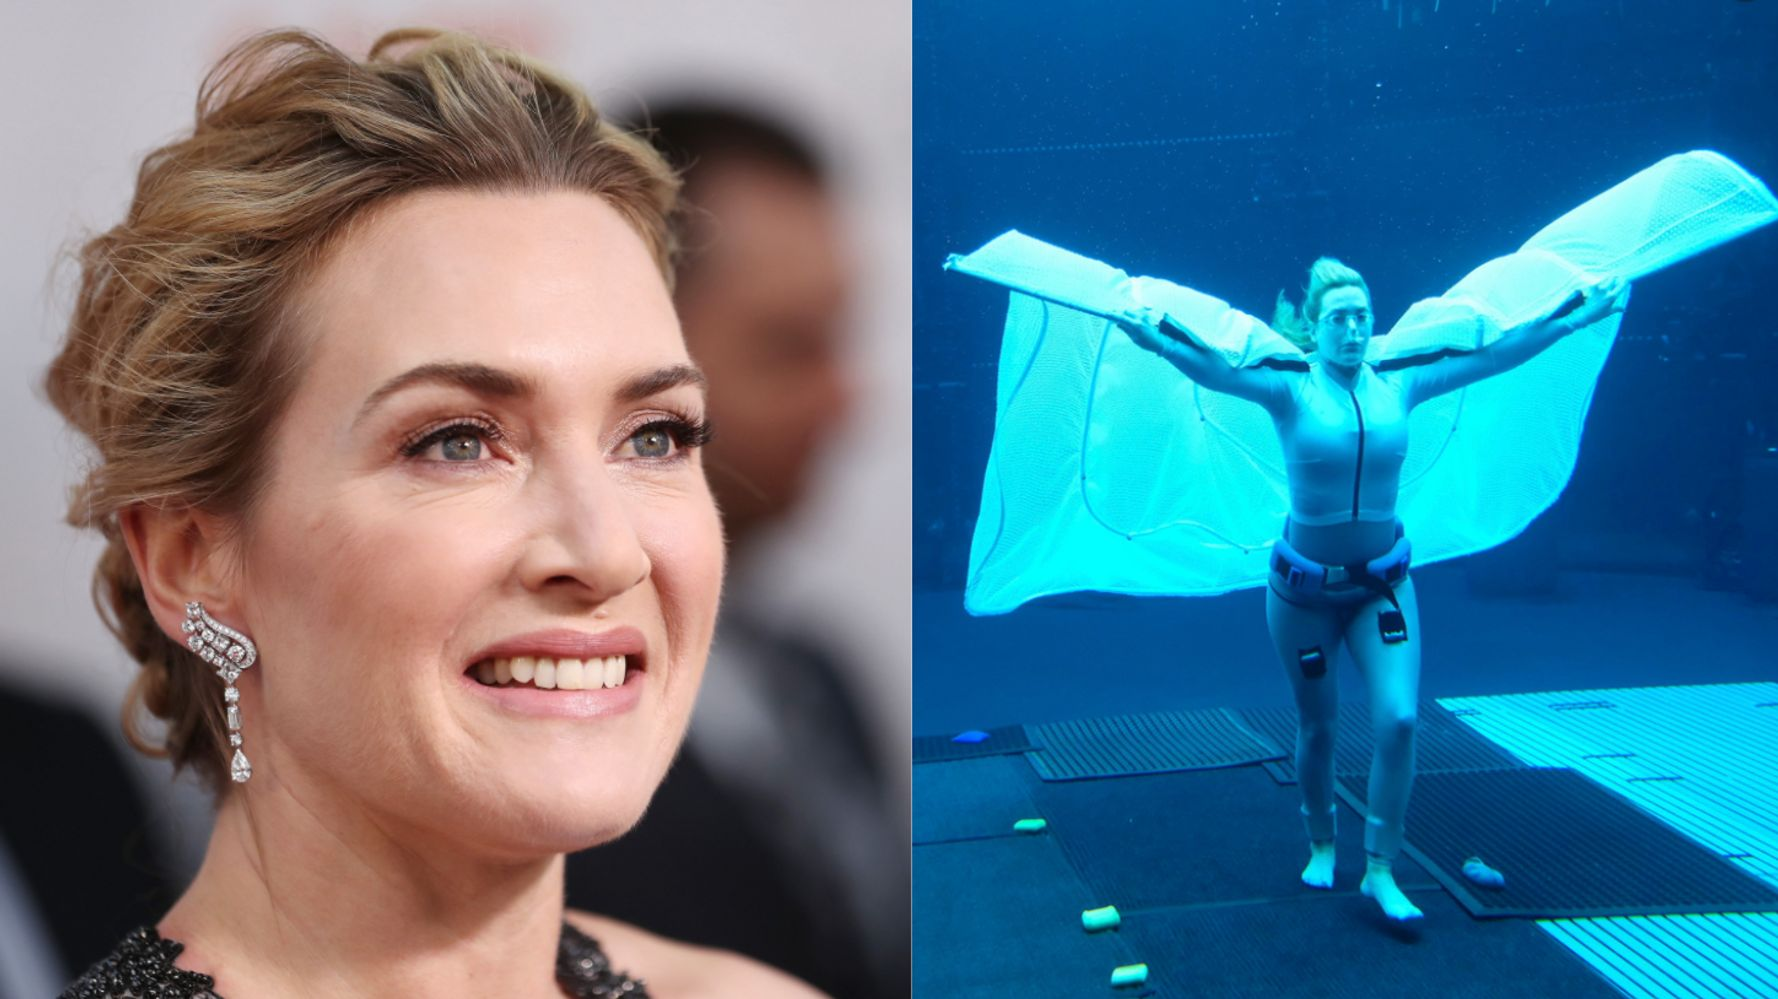 This Photo Of Kate Winslet Filming 'Avatar 2' Underwater Will Make You Take A Deep Breath